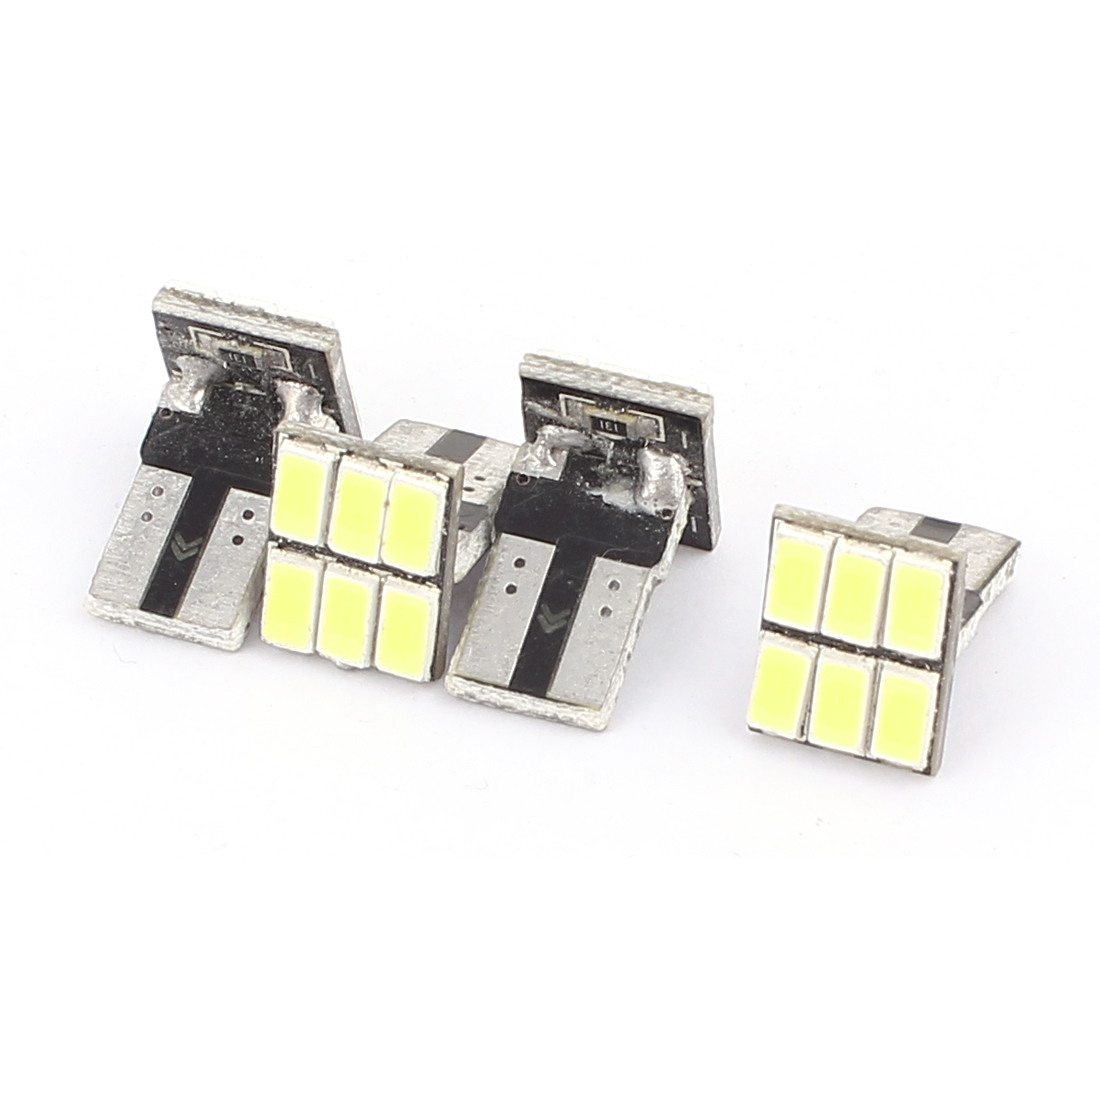 4 Pcs Car T10 White 5630 SMD 6 LED Wedge Light Canbus Signal Turn Lamp Bulb Internal